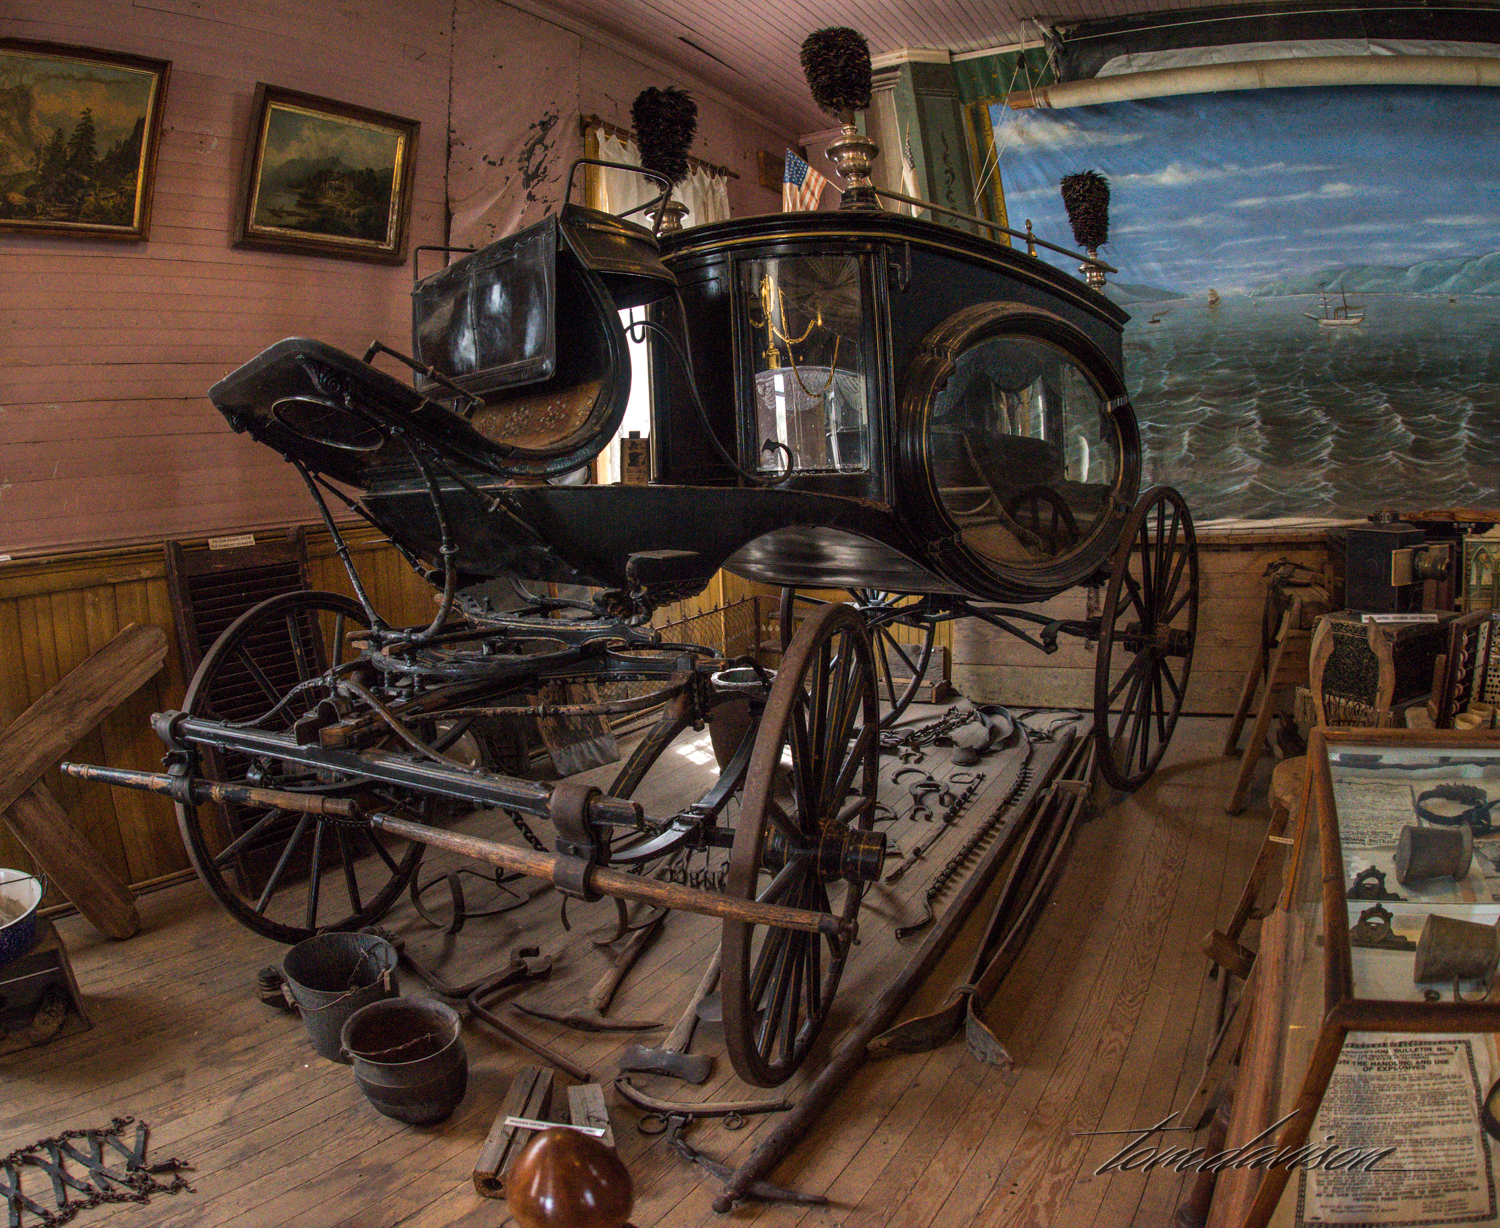 This hearse was found in the museum located in the central part of Bodie. I was surprised by its elegance. The town's cemetery is up the hill away from town and it would have been a very short ride in an elegant carriage.